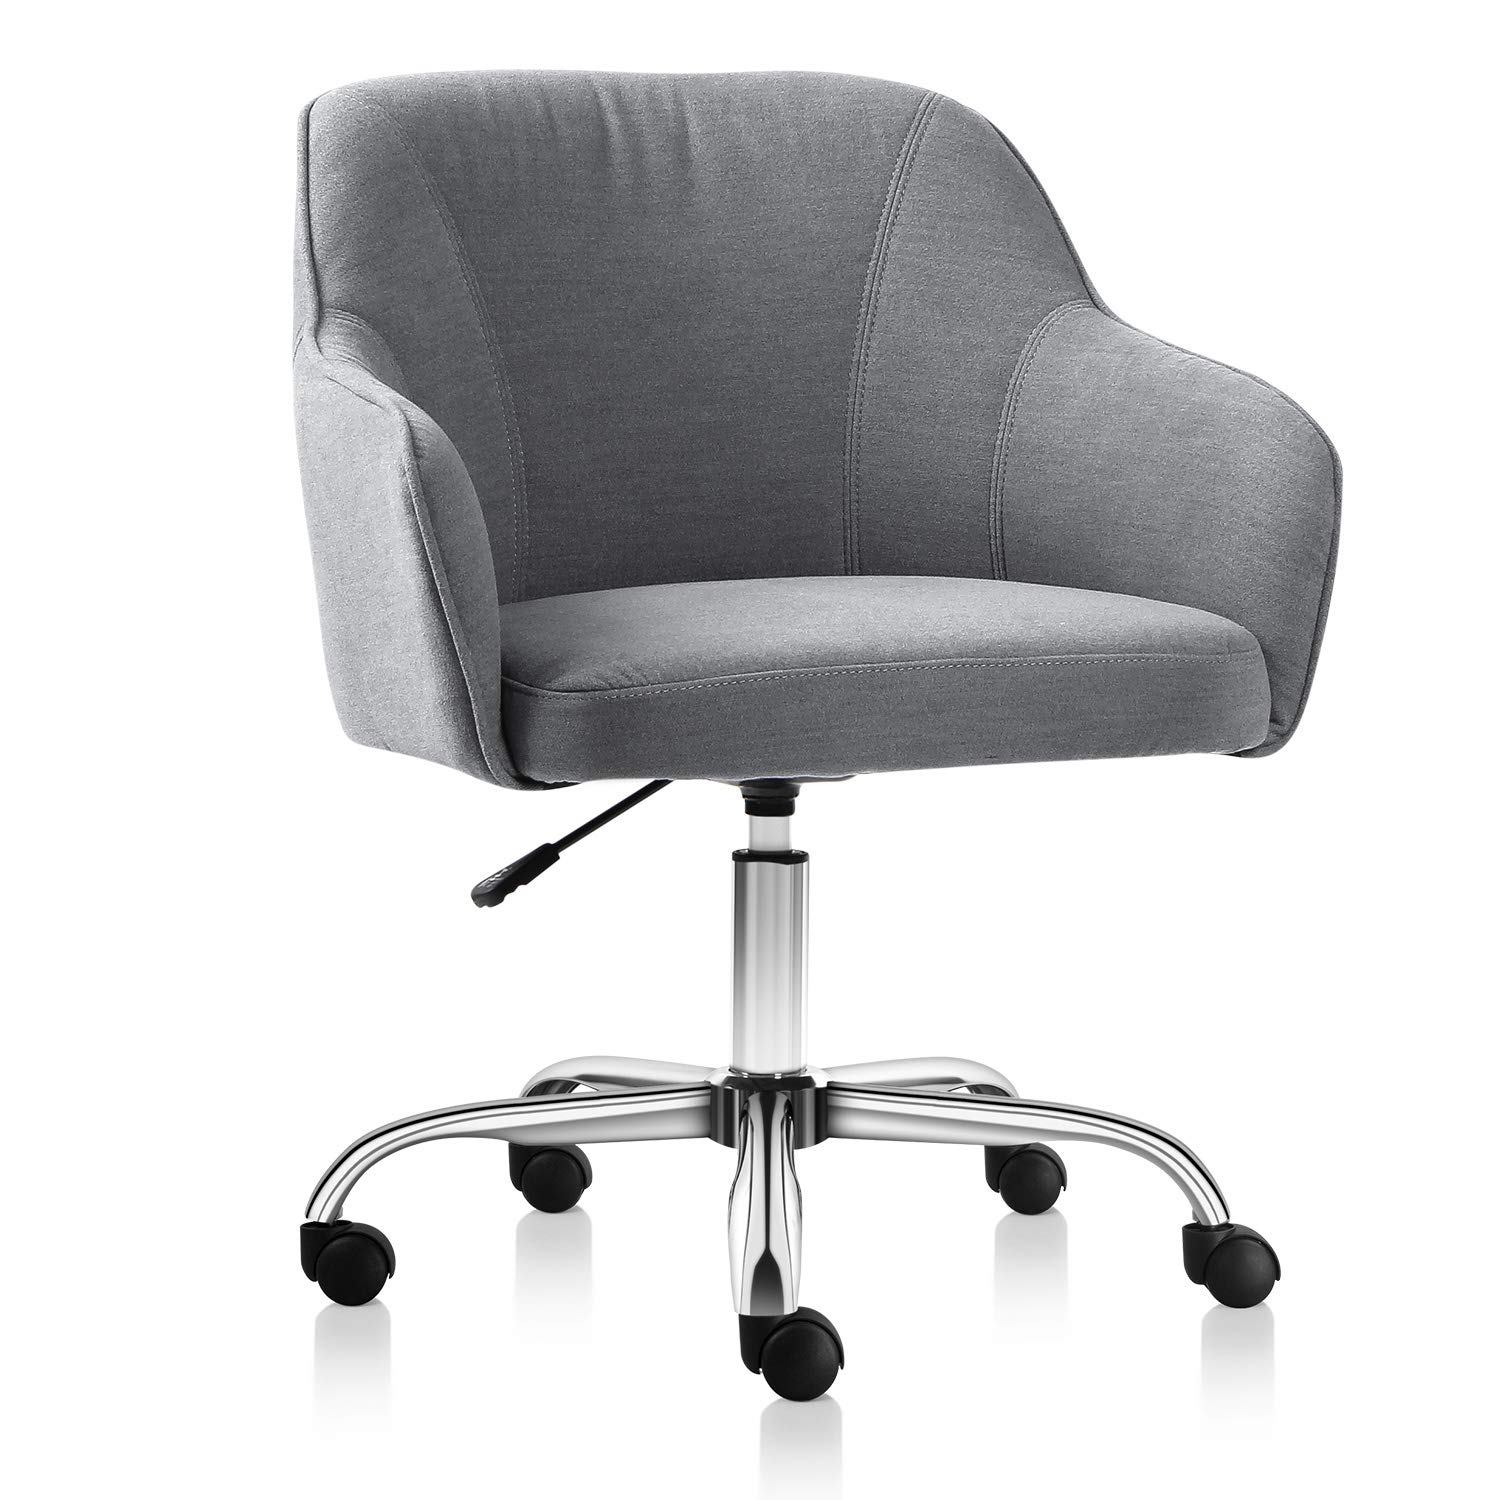 Surprising Vh Furniture Home Office Chair Upholstered Desk Chair With Arms For Conference Room Or Office Gray Download Free Architecture Designs Scobabritishbridgeorg